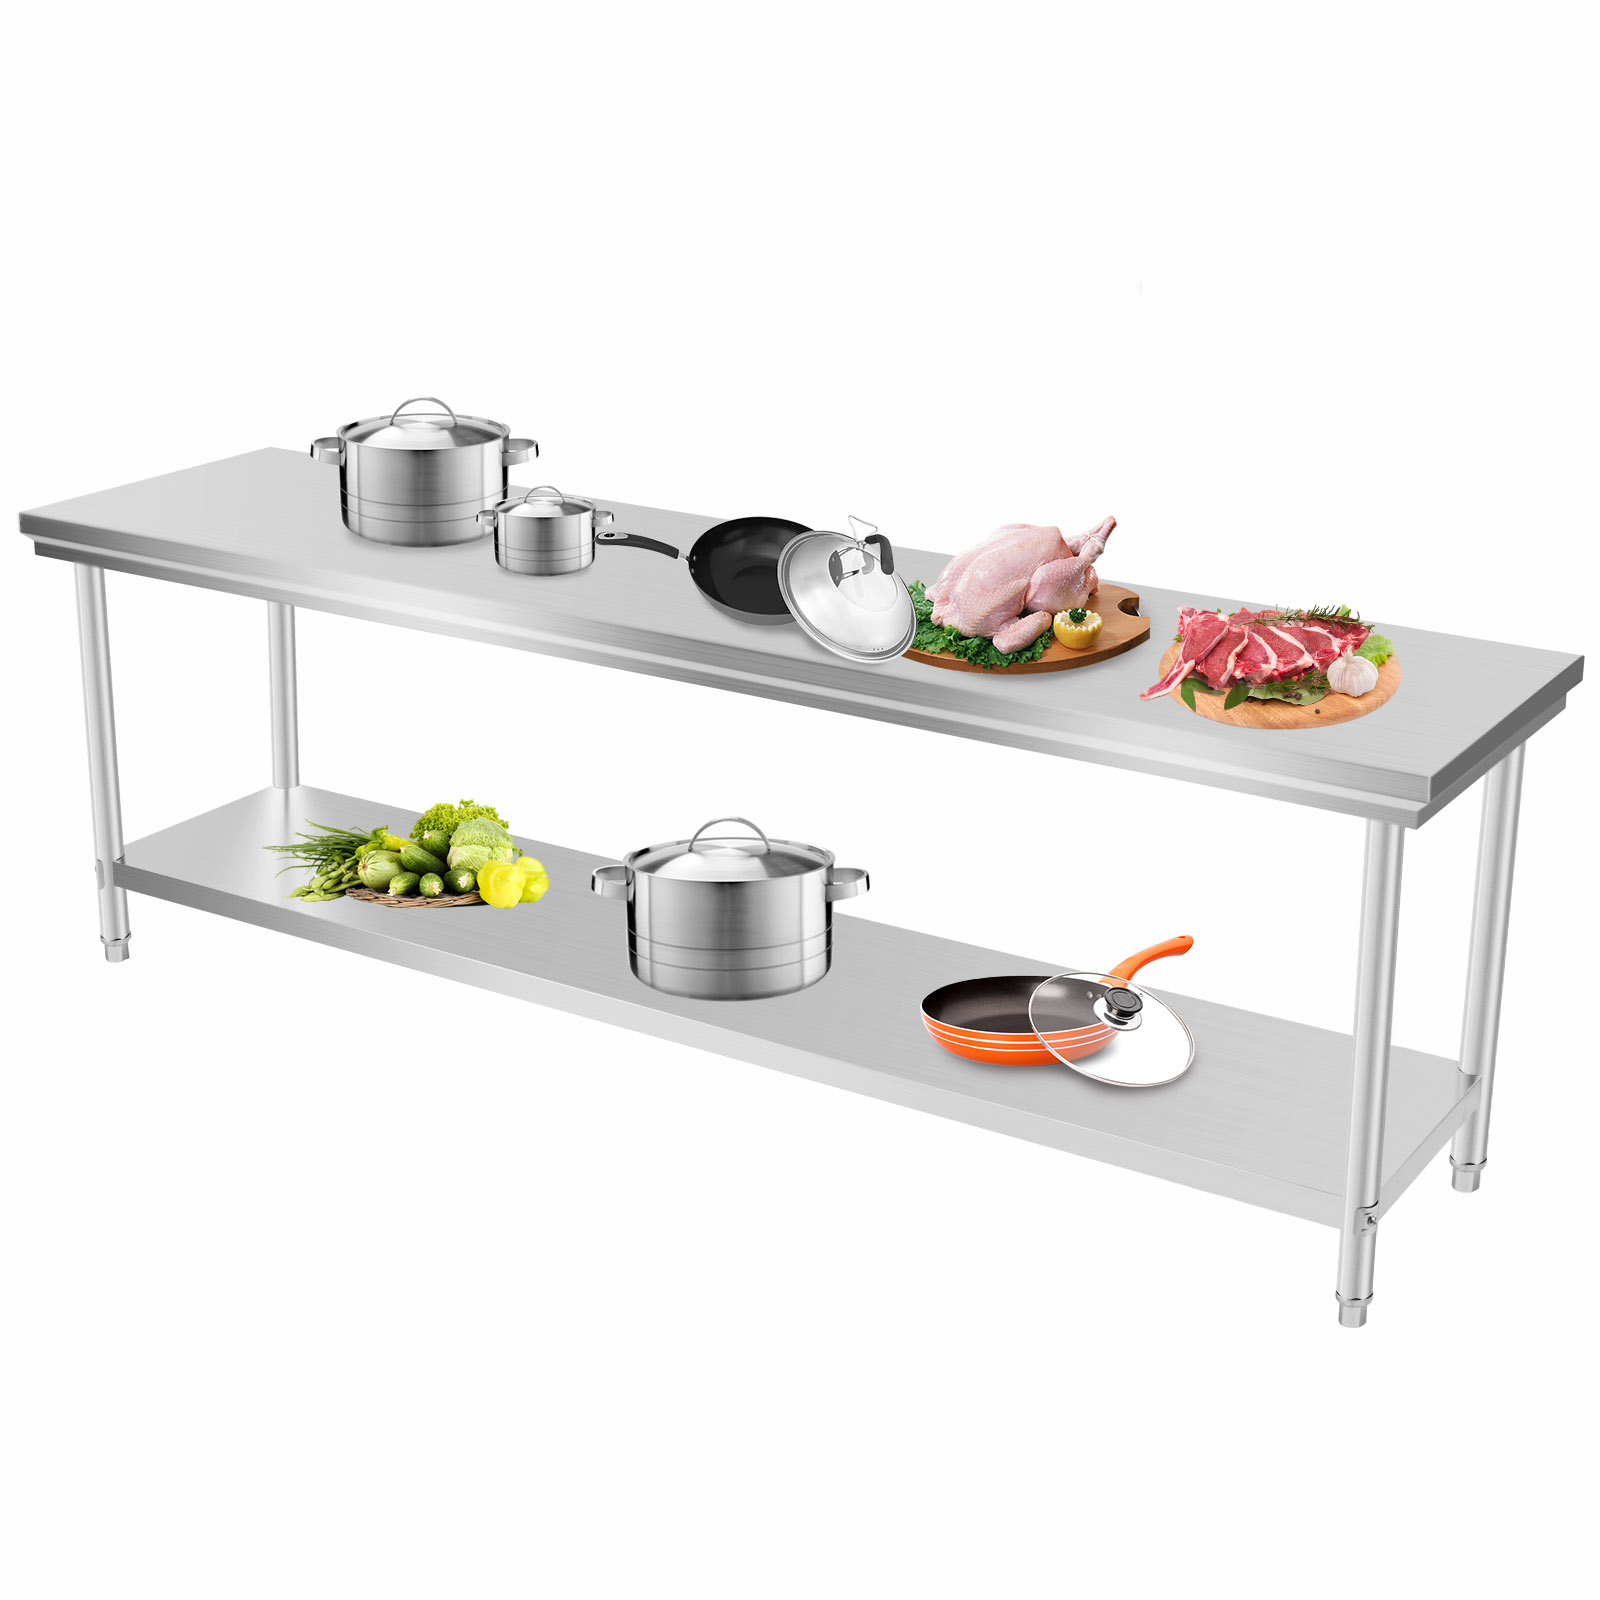 kitchen work tables bistro table 201 commercial stainless steel bench top food